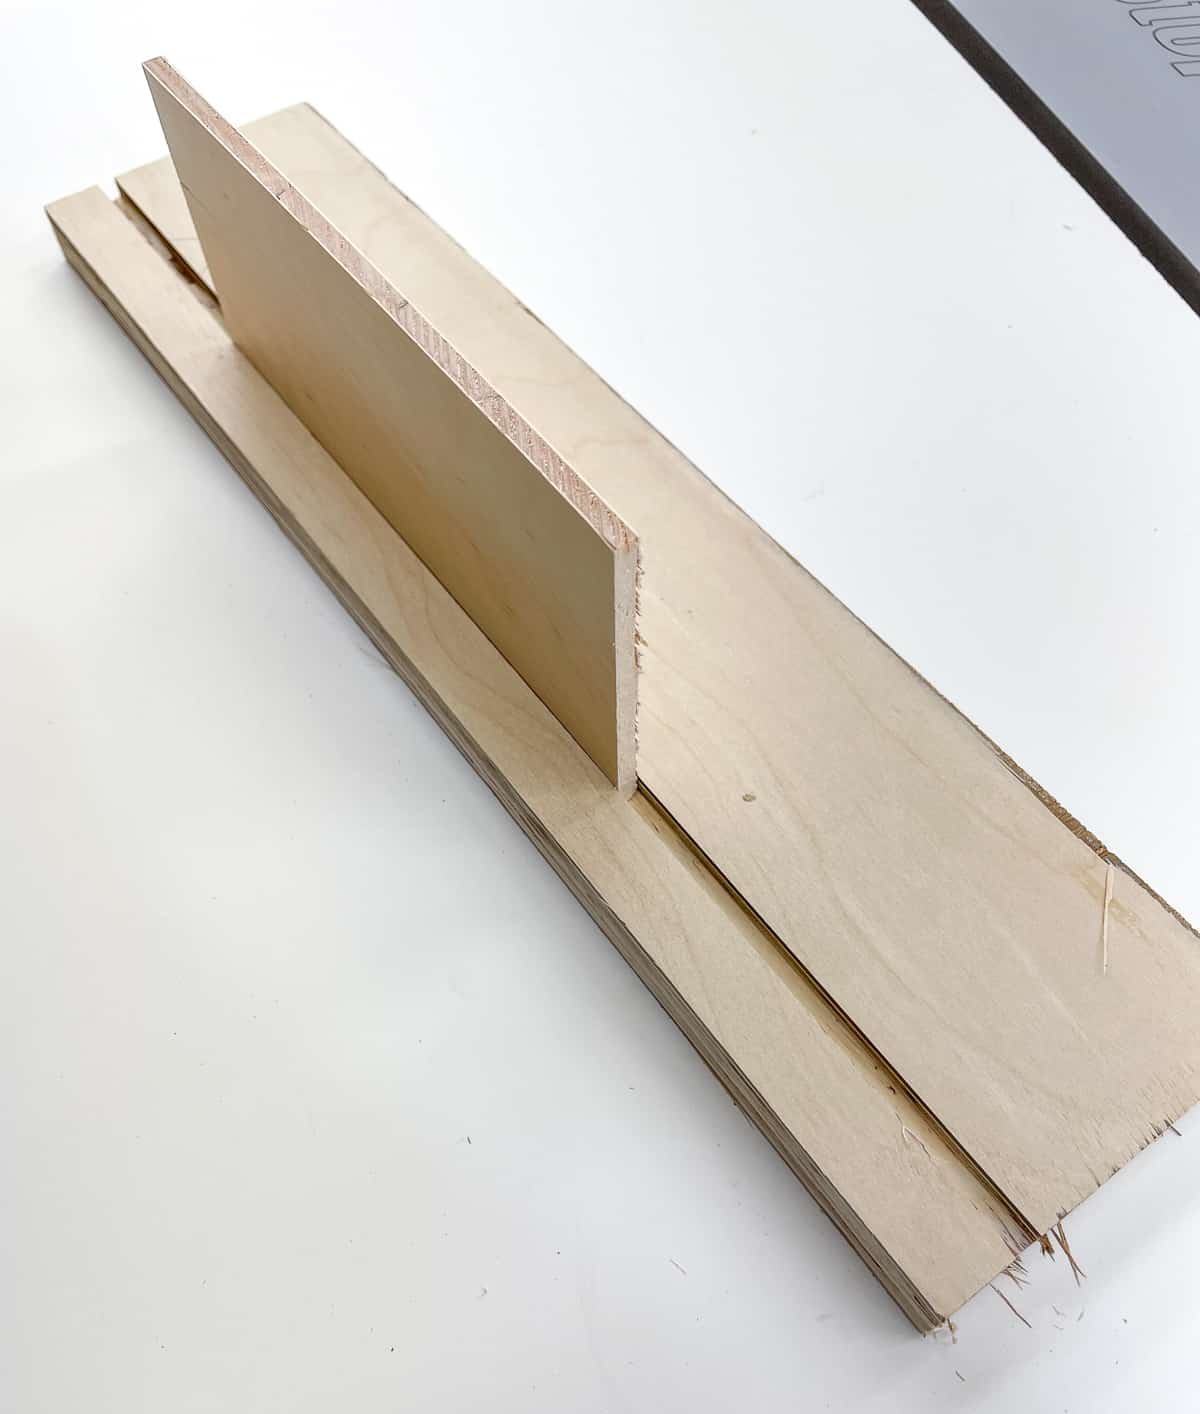 testing fit of the bottom of the drawer box in the groove